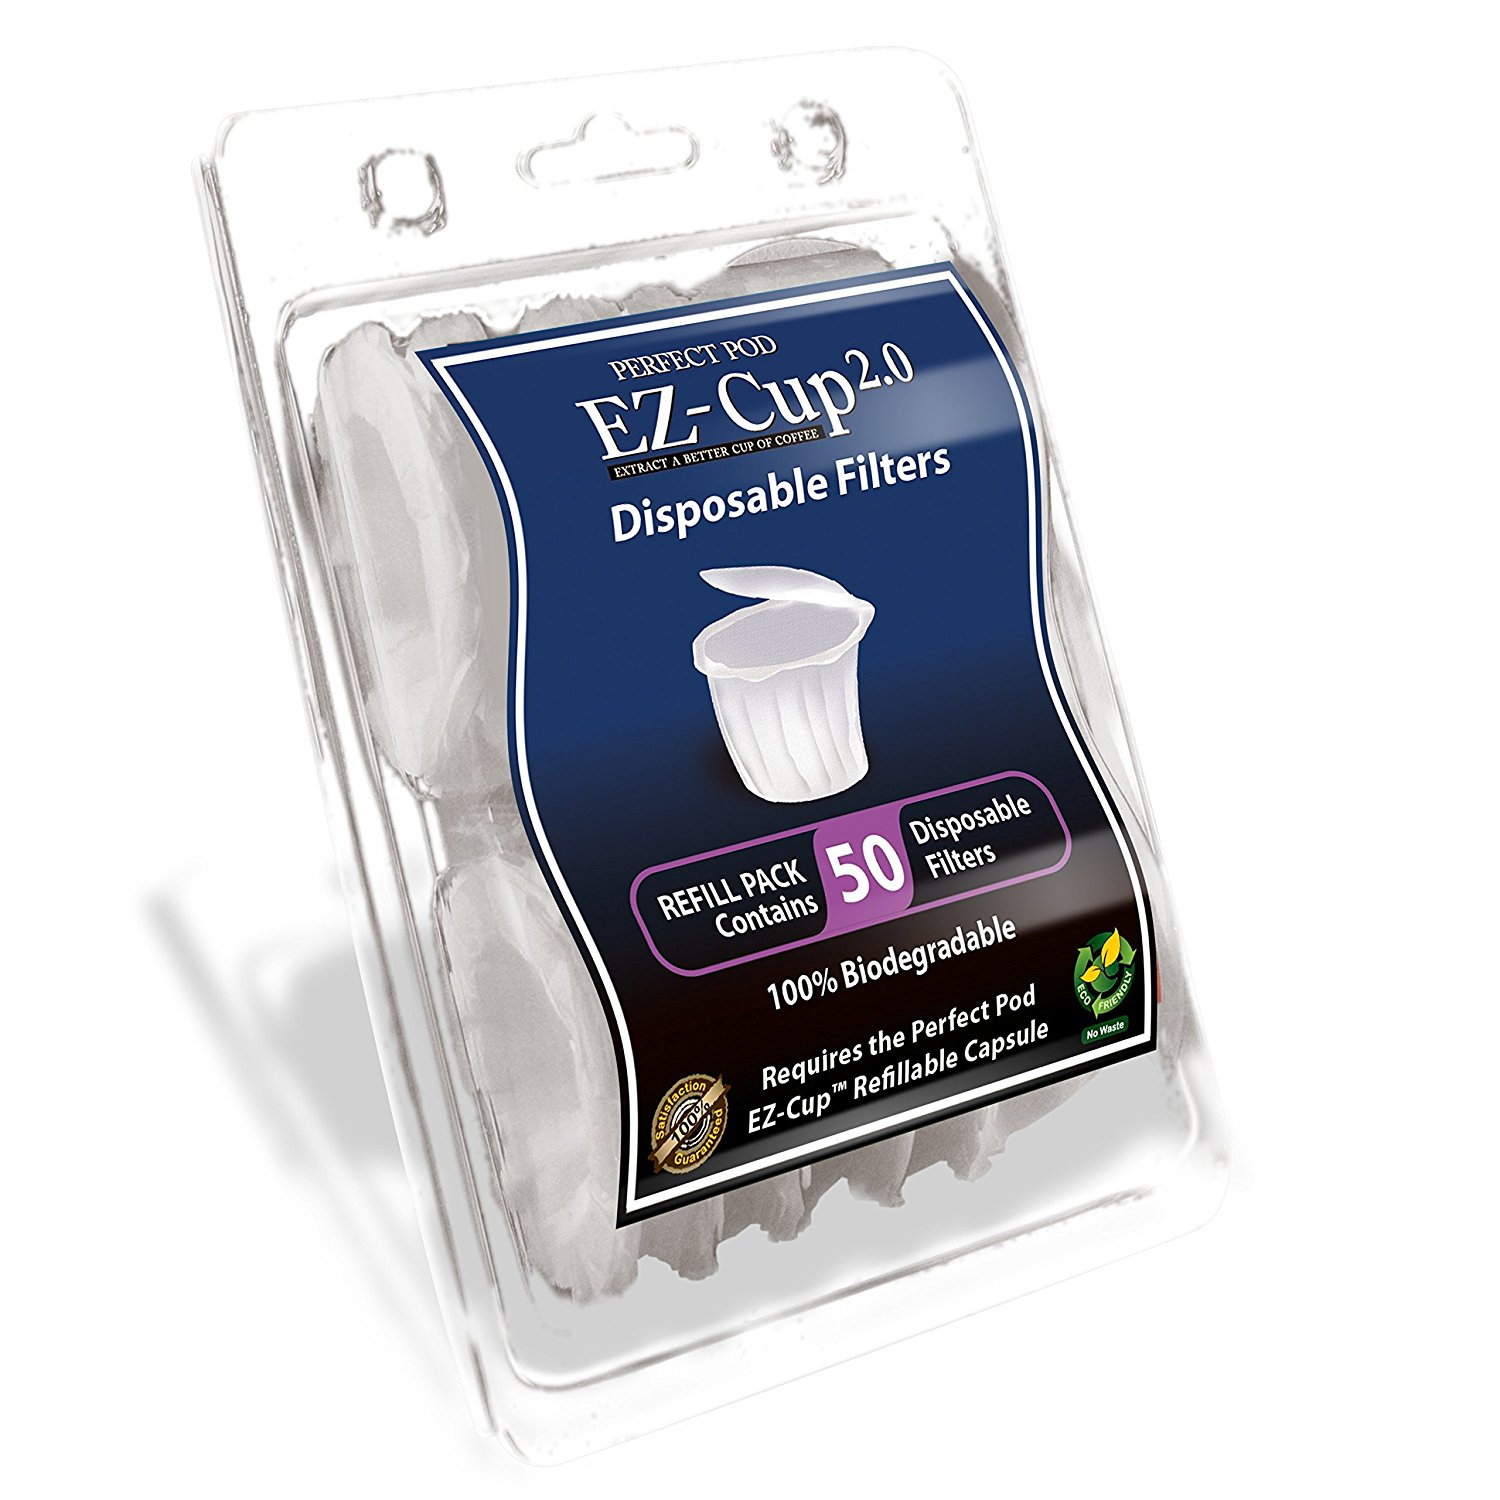 EZ-Cup Filters by Perfect Pod - 10 Pack (500 Filters)